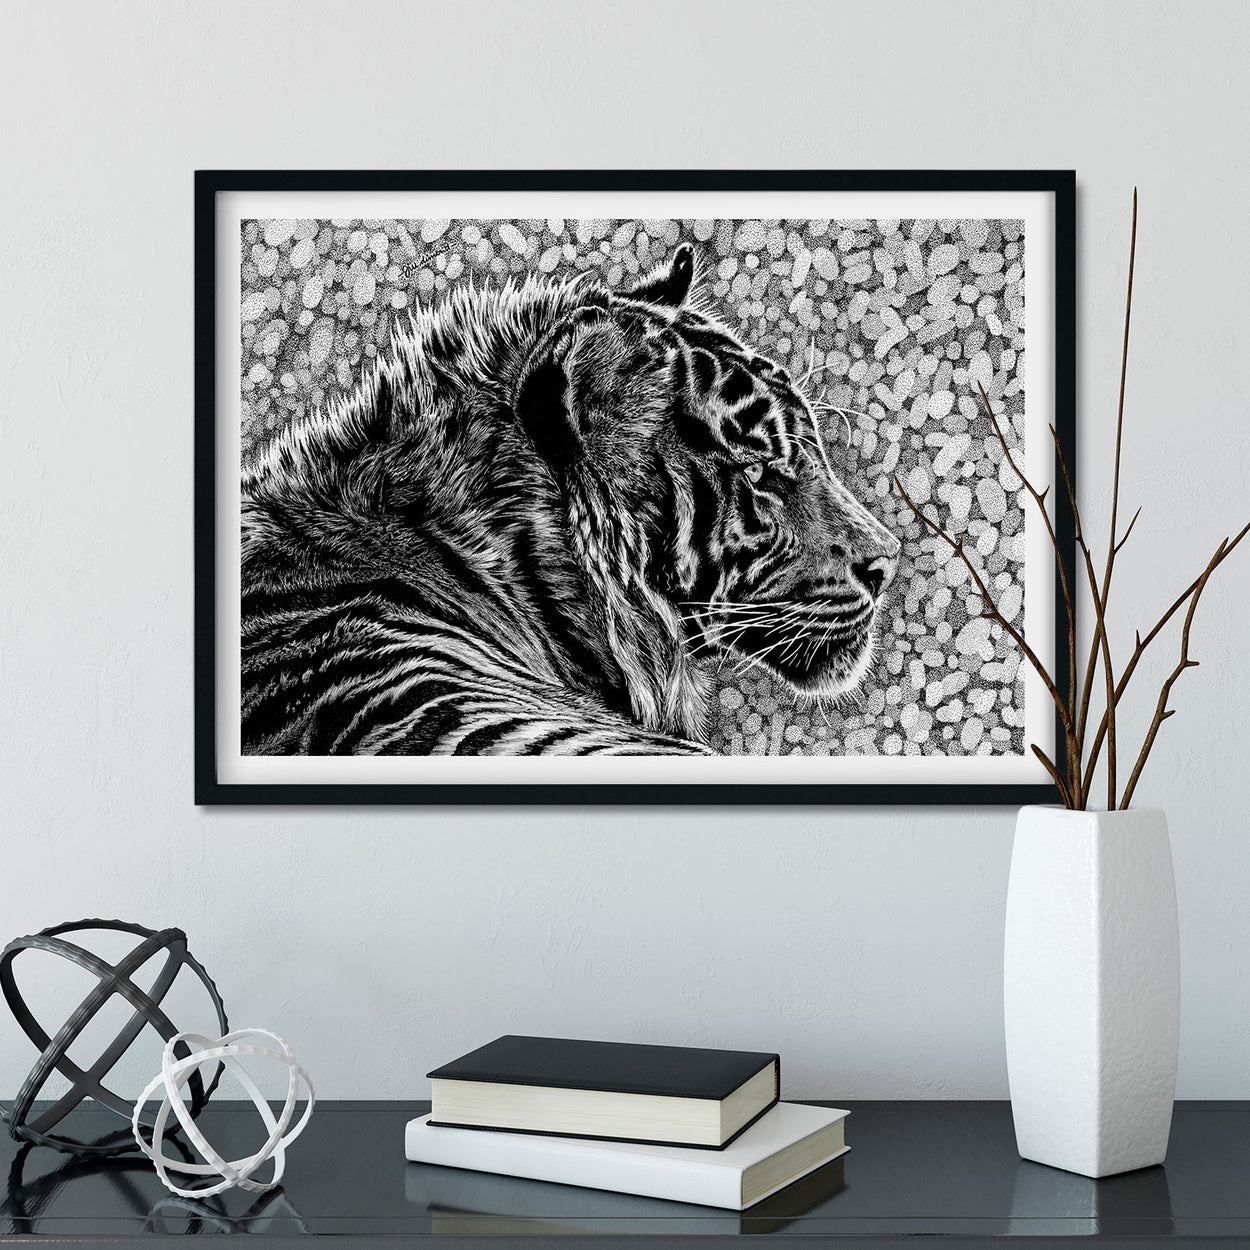 Tiger Wall Art Framed - The Thriving Wild